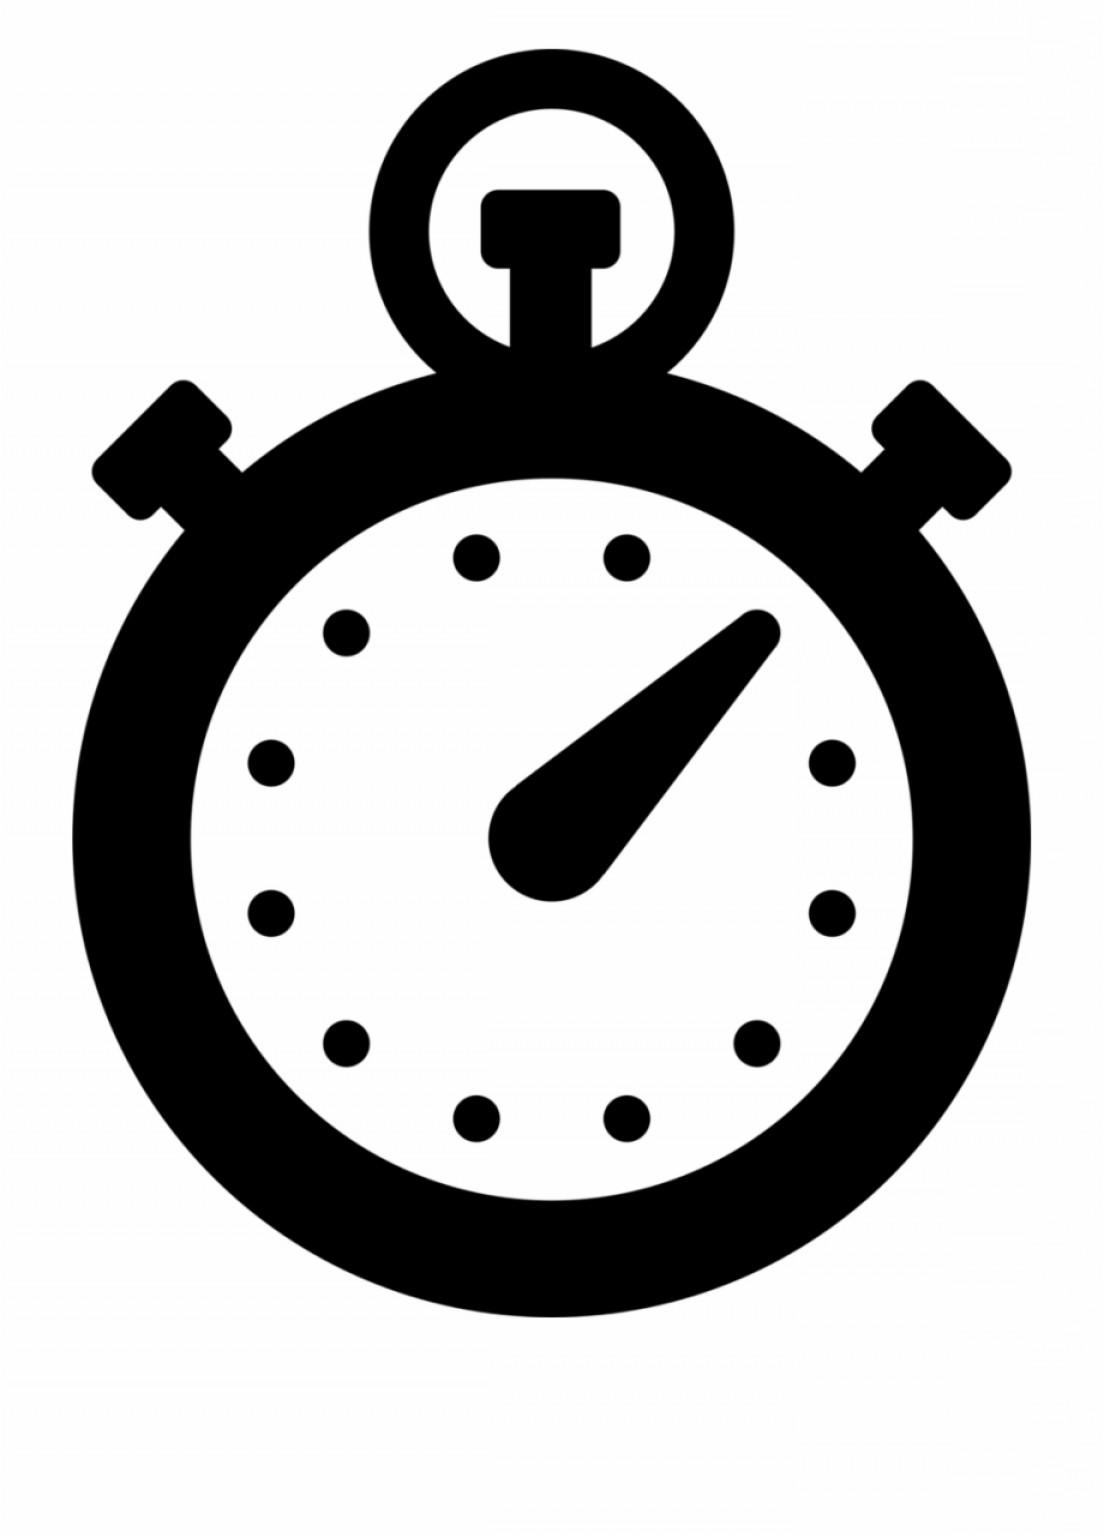 Stop Watch Vector Ai File: Bjwmootransparent Library Icons Png Vector Free And Backgrounds